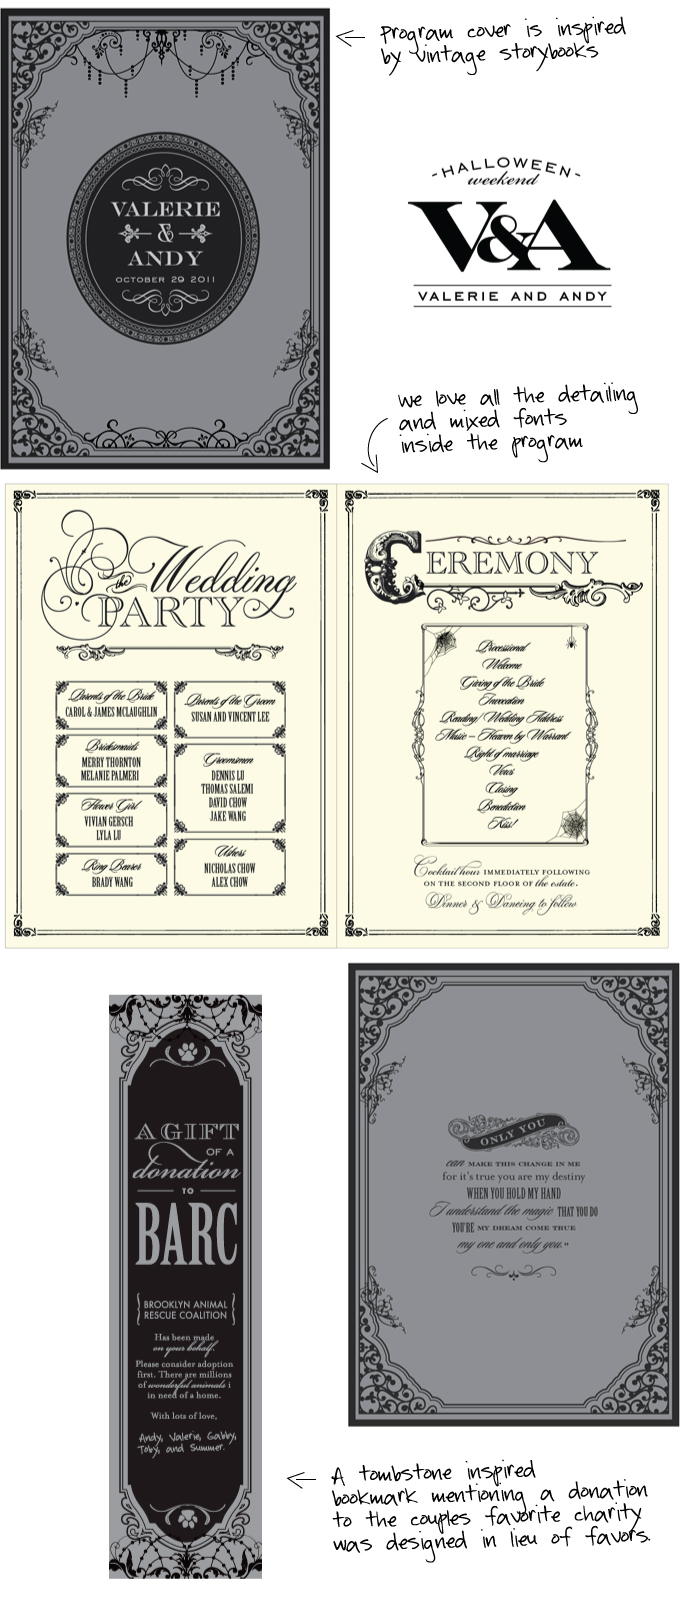 Halloween Wedding Invitations: Taking custom design to a whole new ...